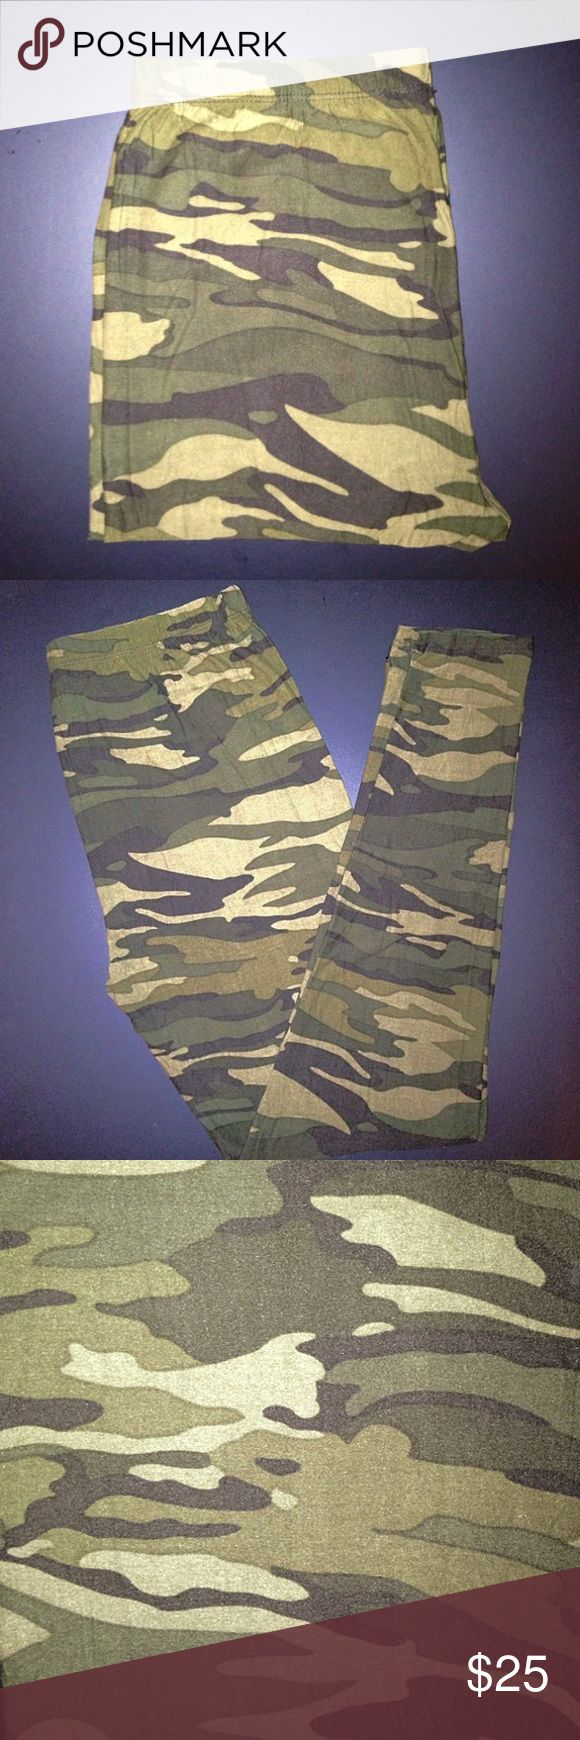 Buttery Soft Army Green Camouflage Legging CAMO TC BUTTERY SOFT GREEN CAMOUFLAGE LEGGINGS  Size: Plus Size (Similar to Tall & Curvy) Numeric Size: 10-18 THESE ARE NOT LULAROE Fabric Blend: 92% Polyester 8% Spandex (Same Blend as Lularoe)  Brand New - Hard to Find Limited Edition Print! Super Soft & Comfy Leggings ~ Just Like Other Brands!!   These ARE NOT LuLaRoe Leggings But Fit & Feel Just Like Them!  *Ships Within 24 Hours* *Smoke Free Home*  ~All Prints Are Limited Edition~ ~If You…